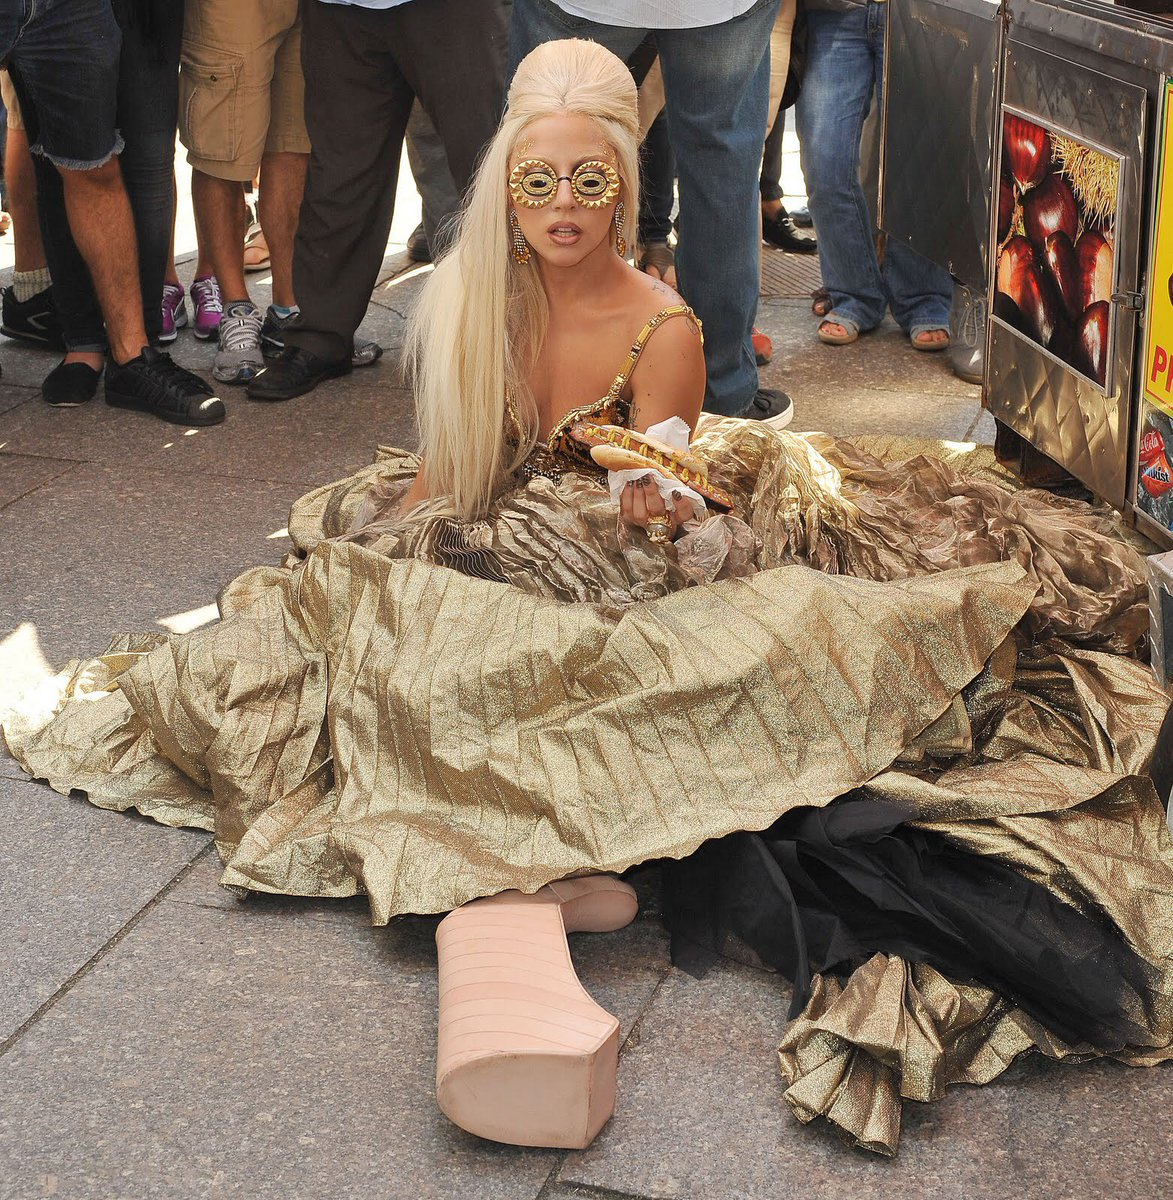 RT @LGDoingThings: Lady Gaga falling over in 18-inch heels while eating a hotdog in New York City (2011) https://t.co/SfOCR1FZme